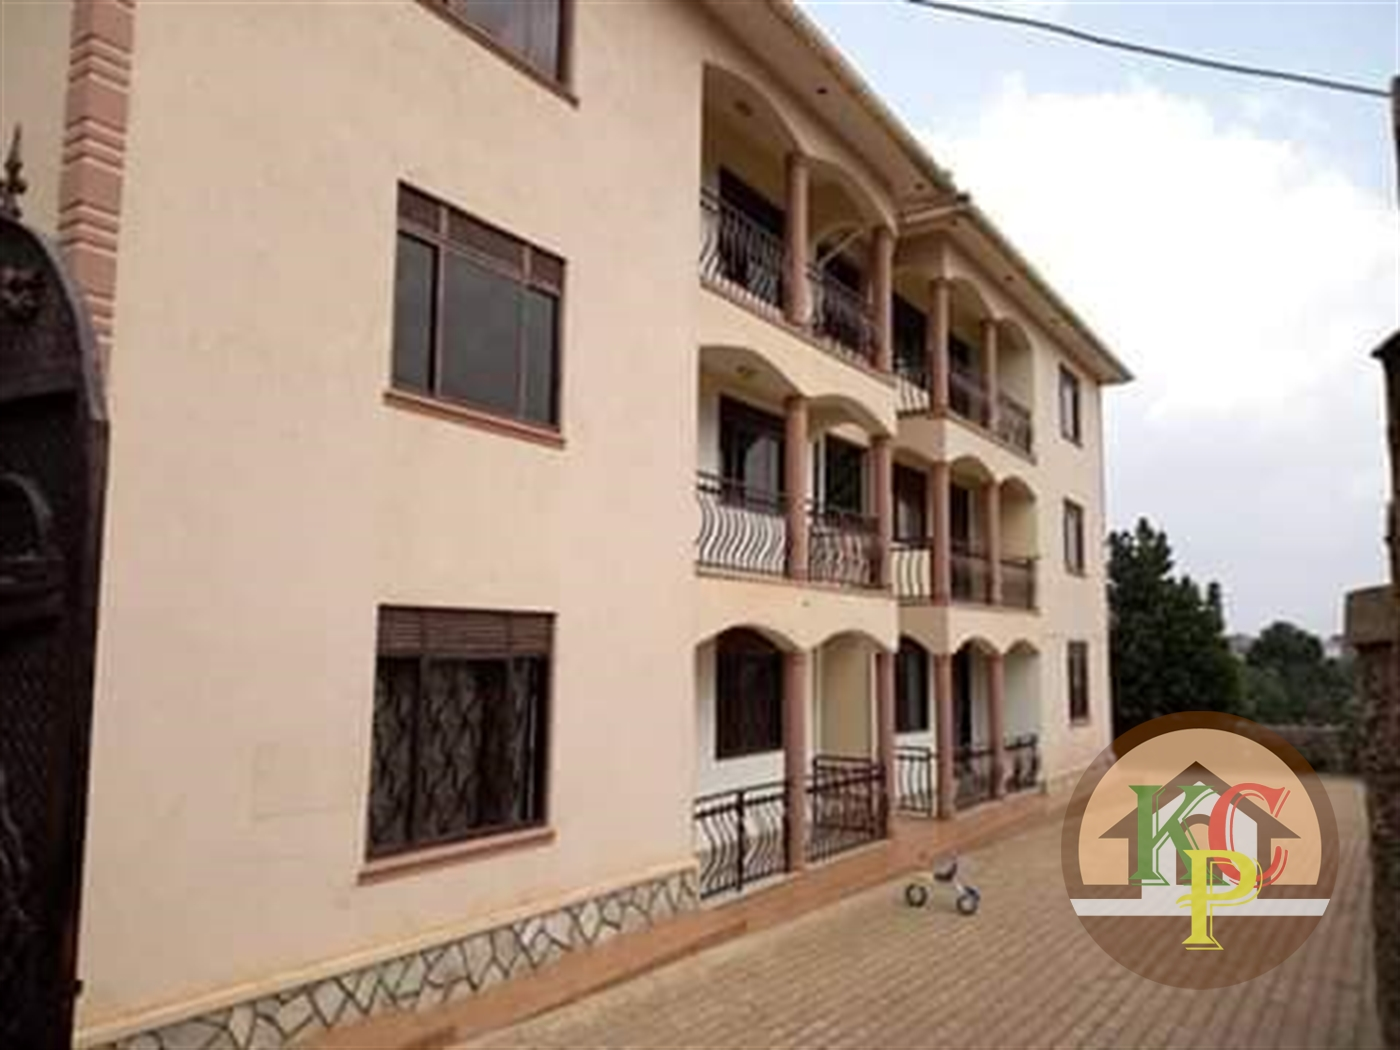 Apartment for rent in Kulambiro Kampala